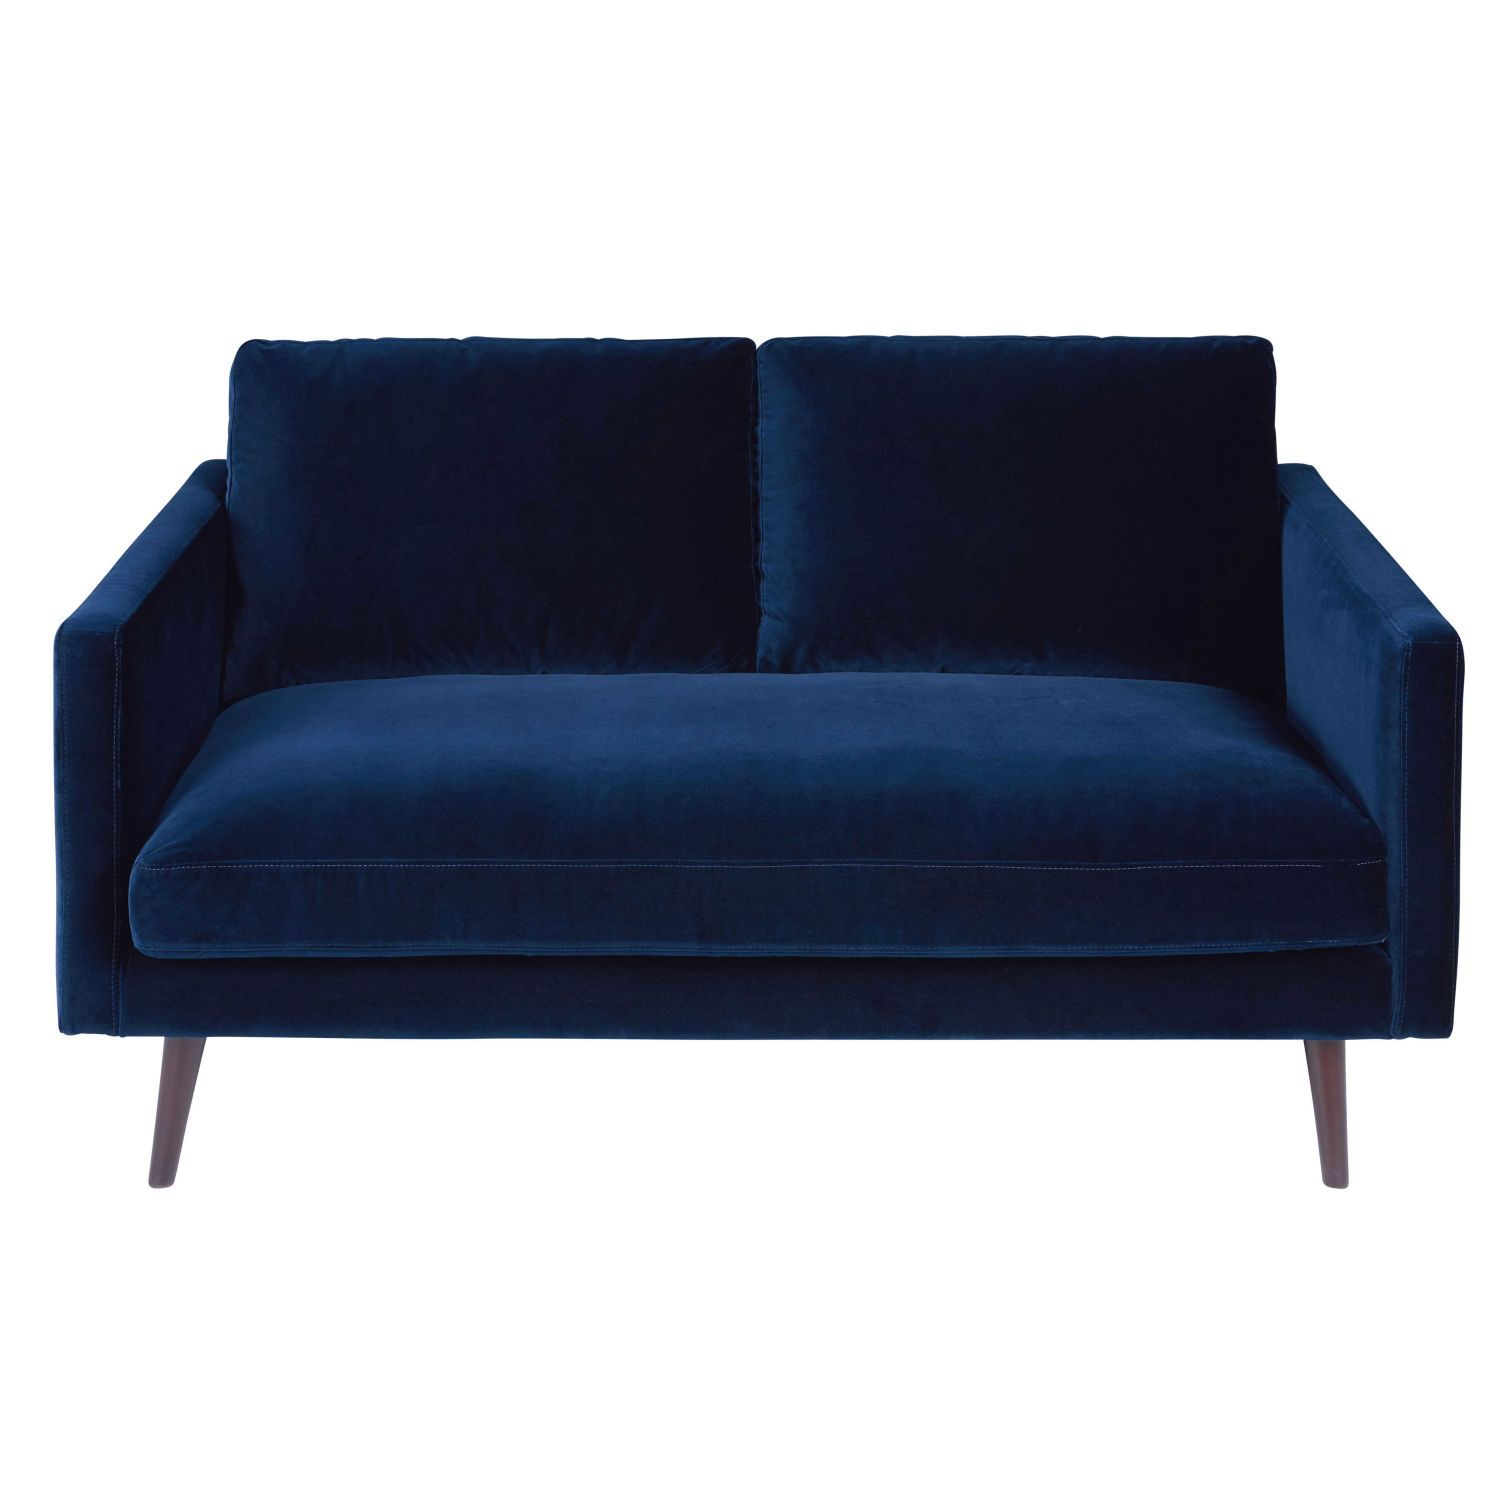 Midnight Blue 2 Seater Velvet Sofa 734 Canape Velours Bleu